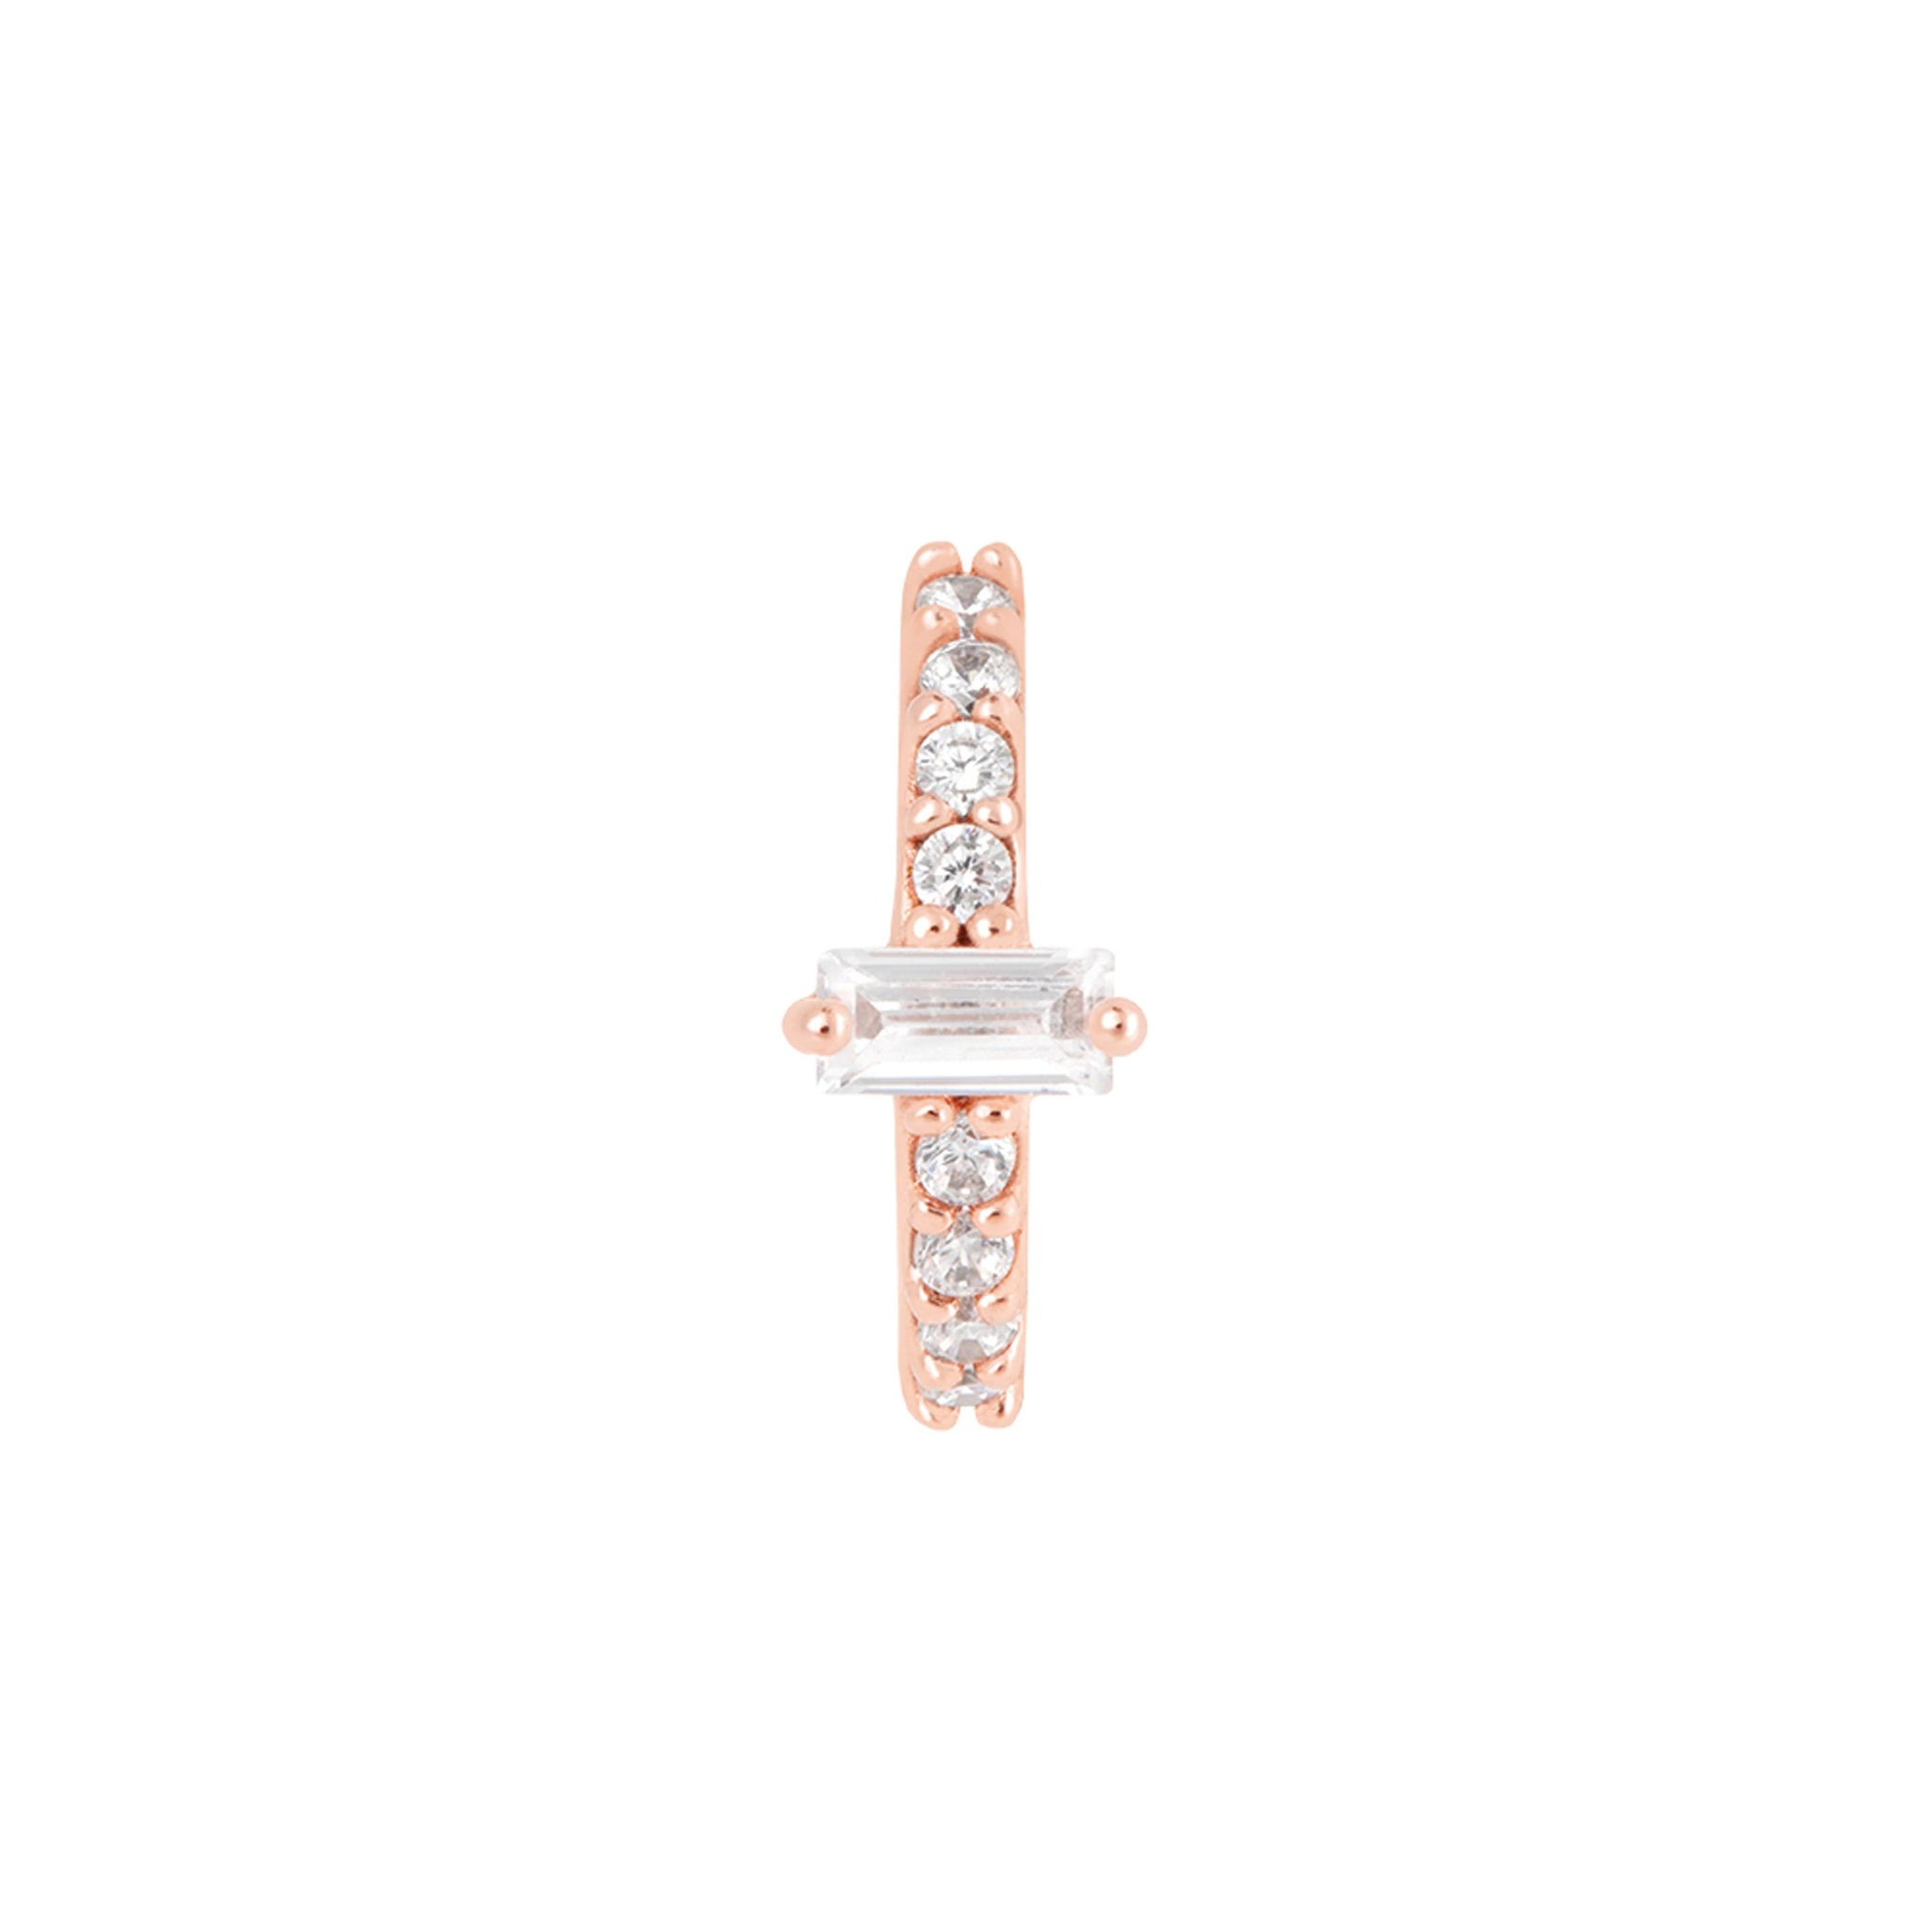 Baguette Gem Clicker in Rose Gold